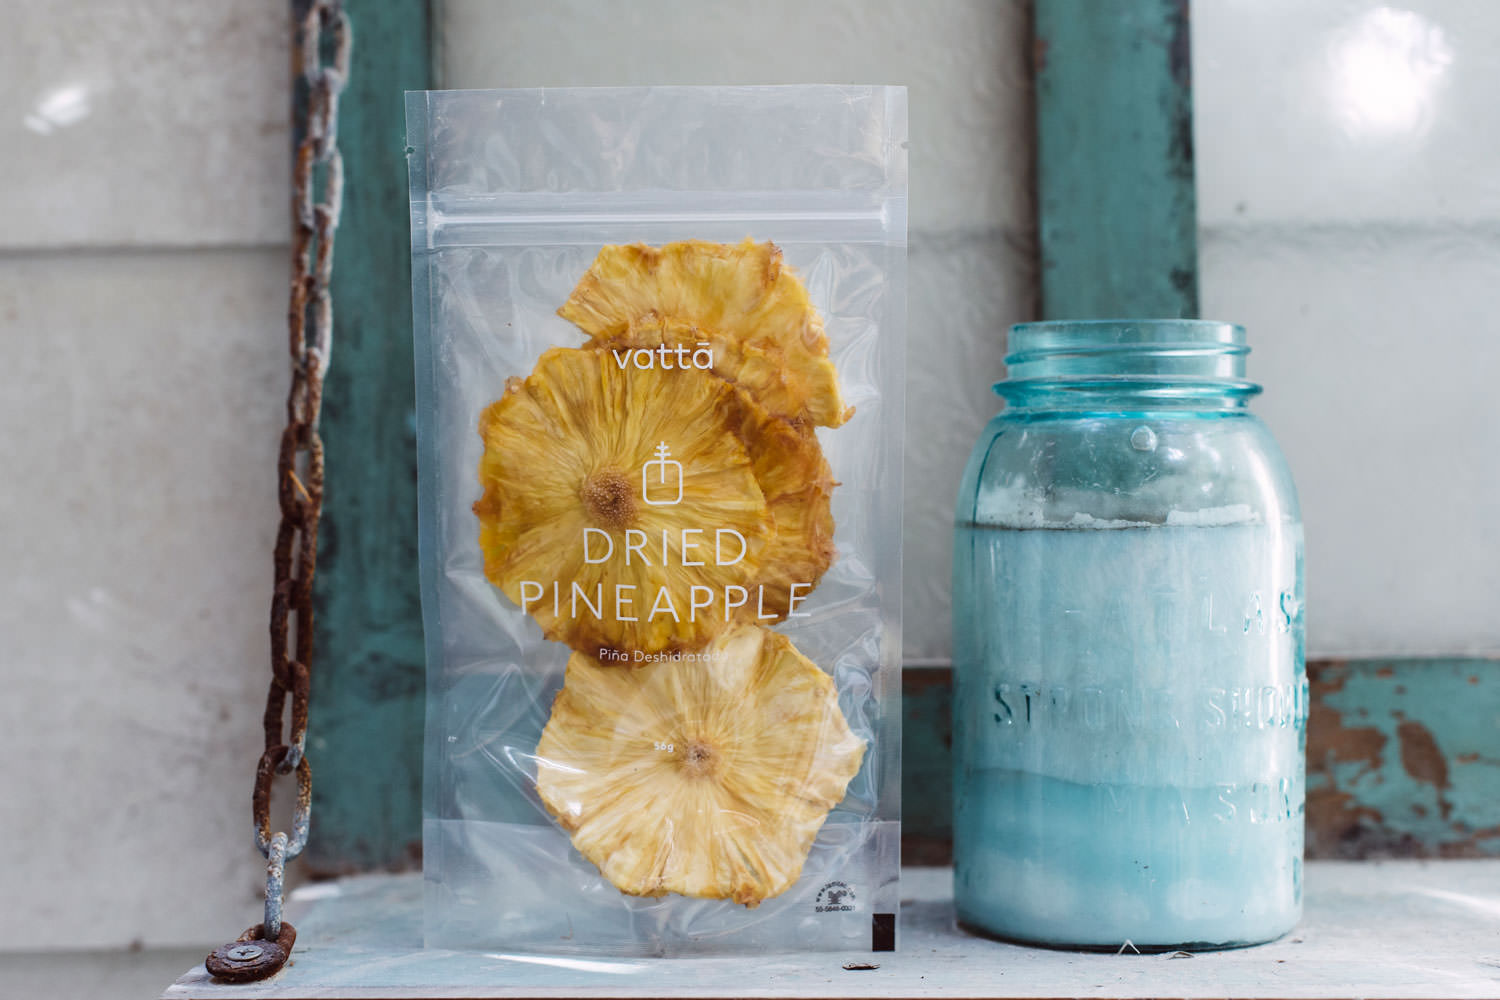 Vatta-Dried-Pineapple.jpg